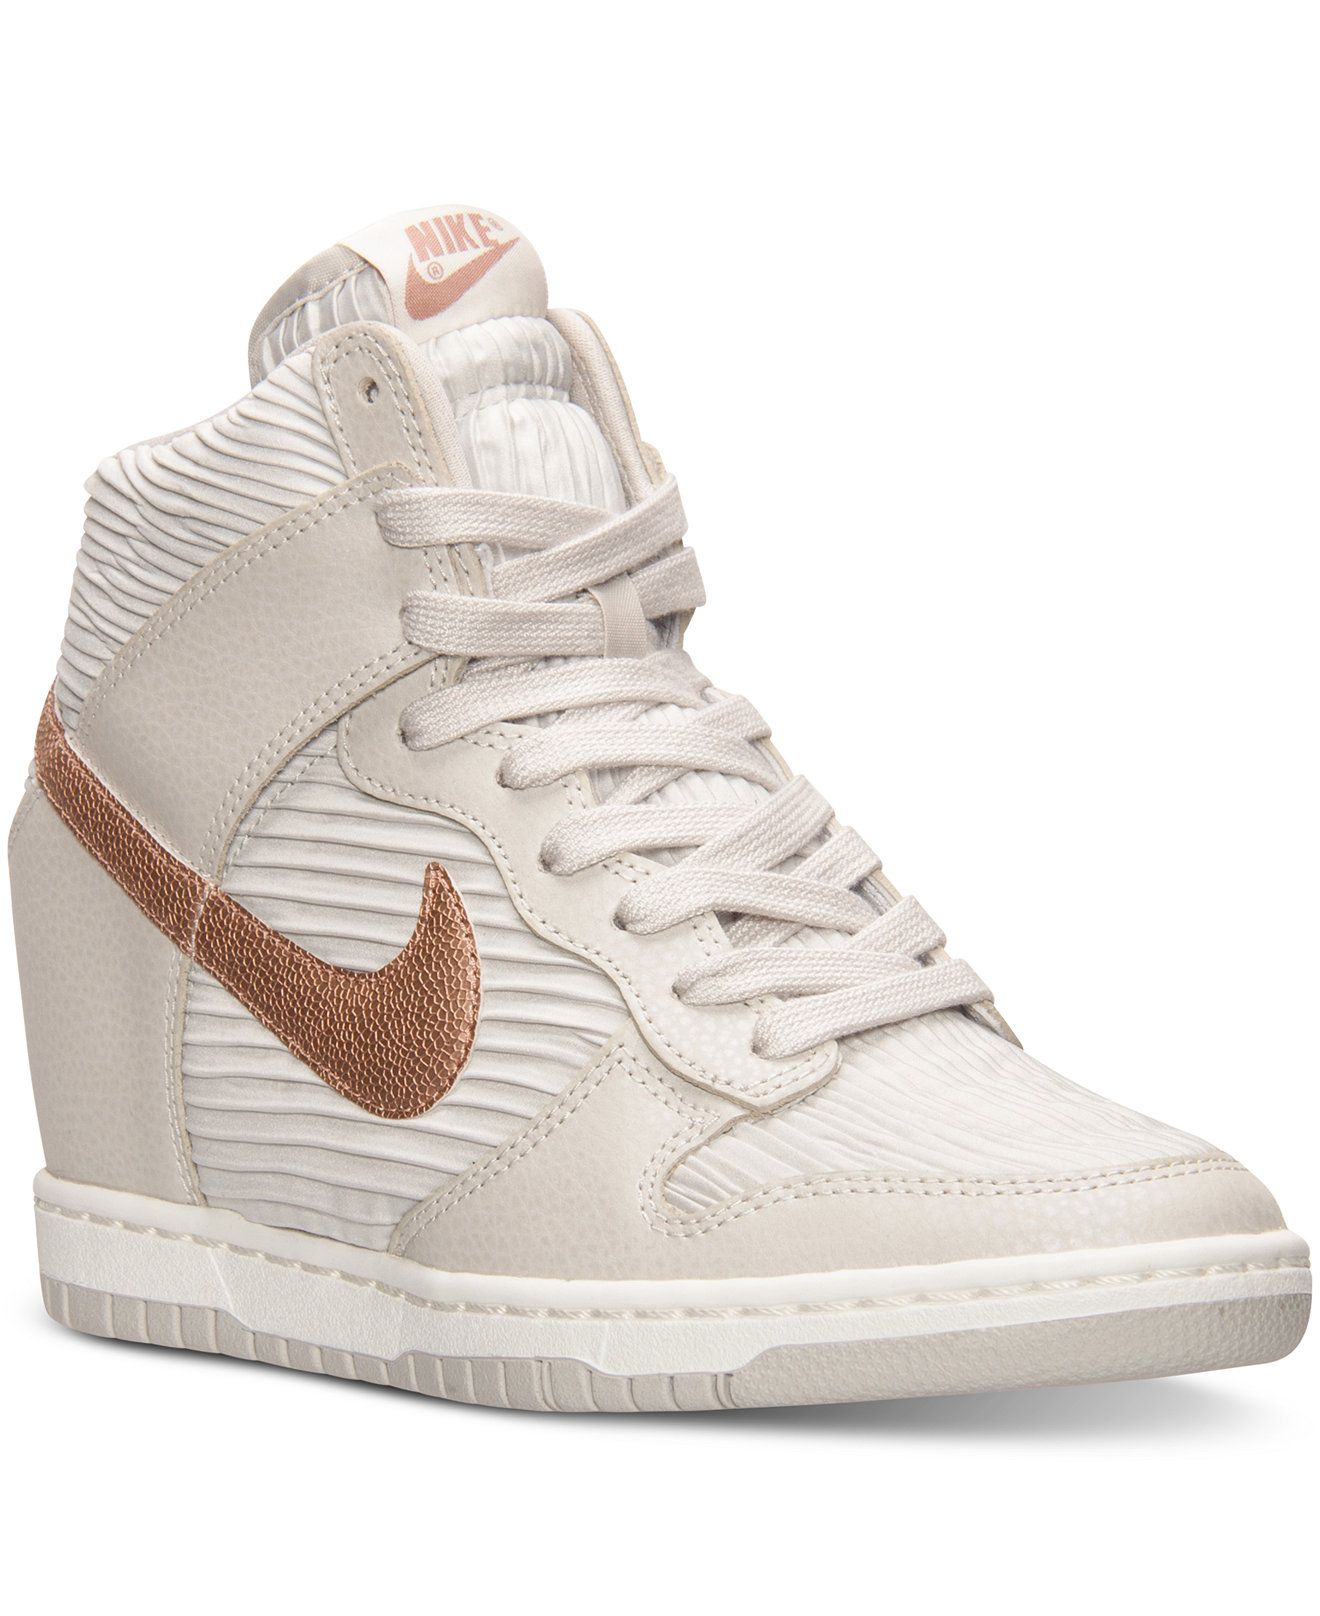 a78ea9641703 Nike Women s Dunk Sky Hi Casual Sneakers from Finish Line - Finish Line  Athletic Shoes - Shoes - Macy s